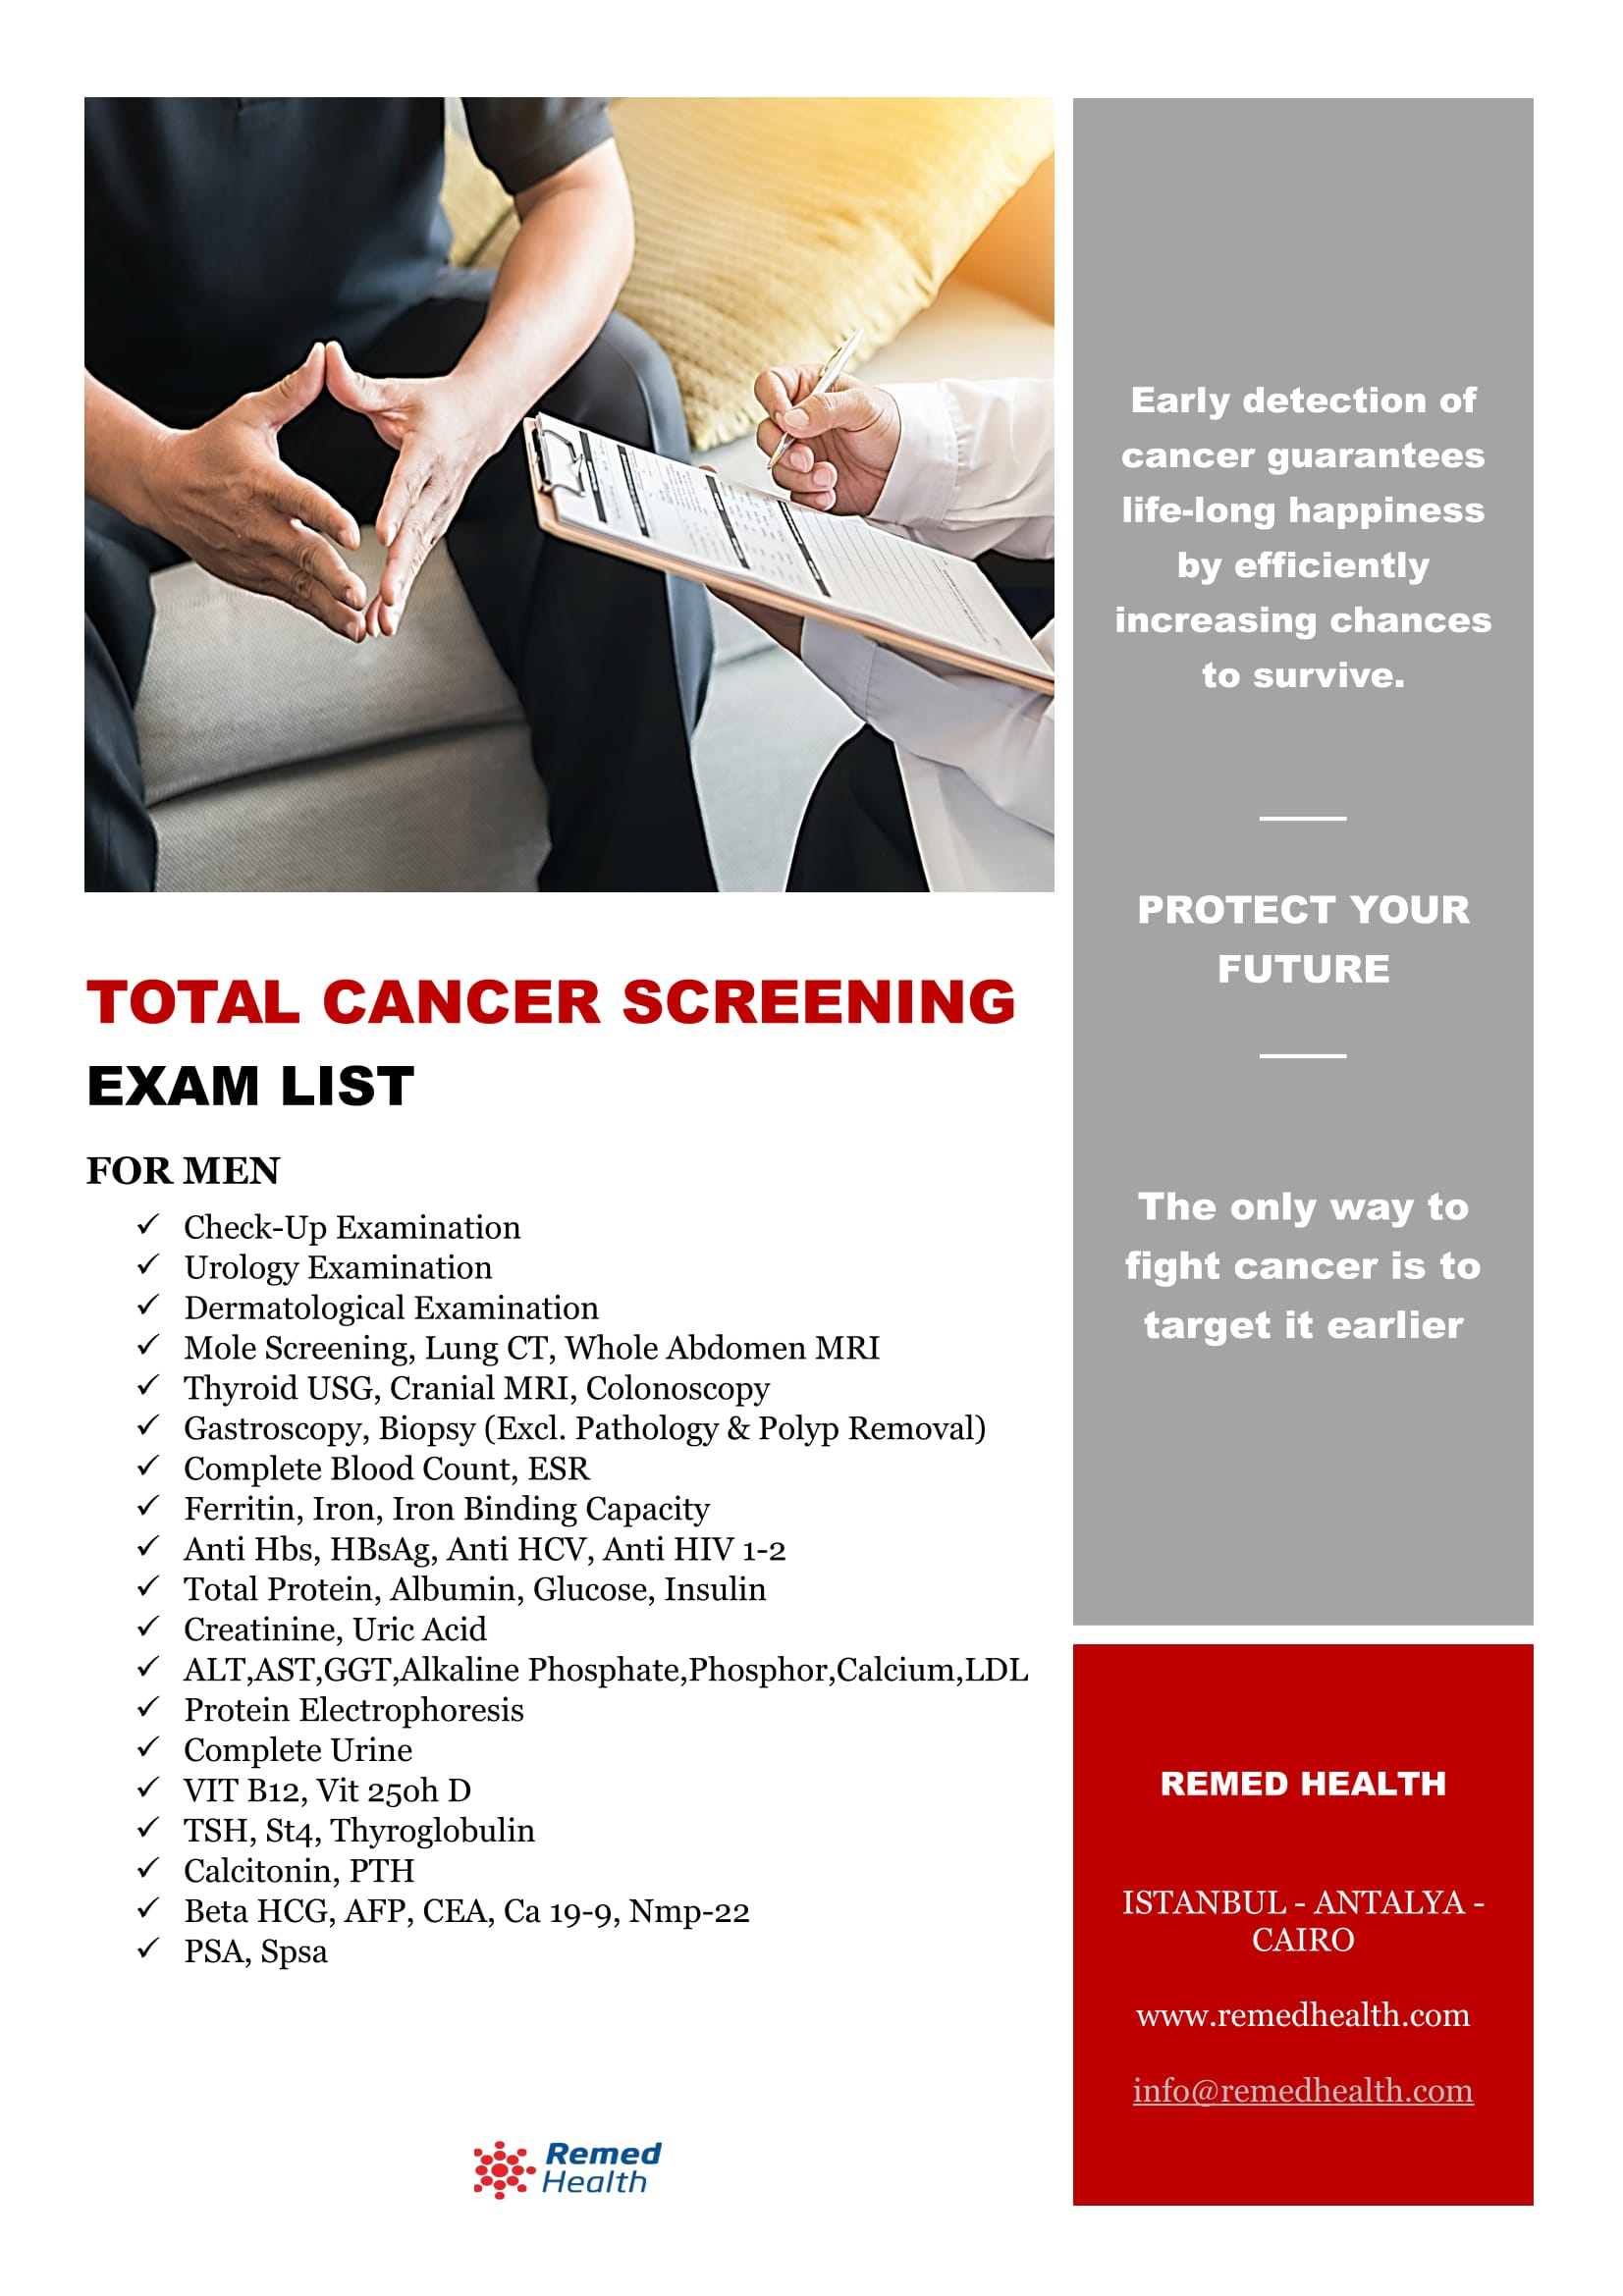 Total Cancer Screening